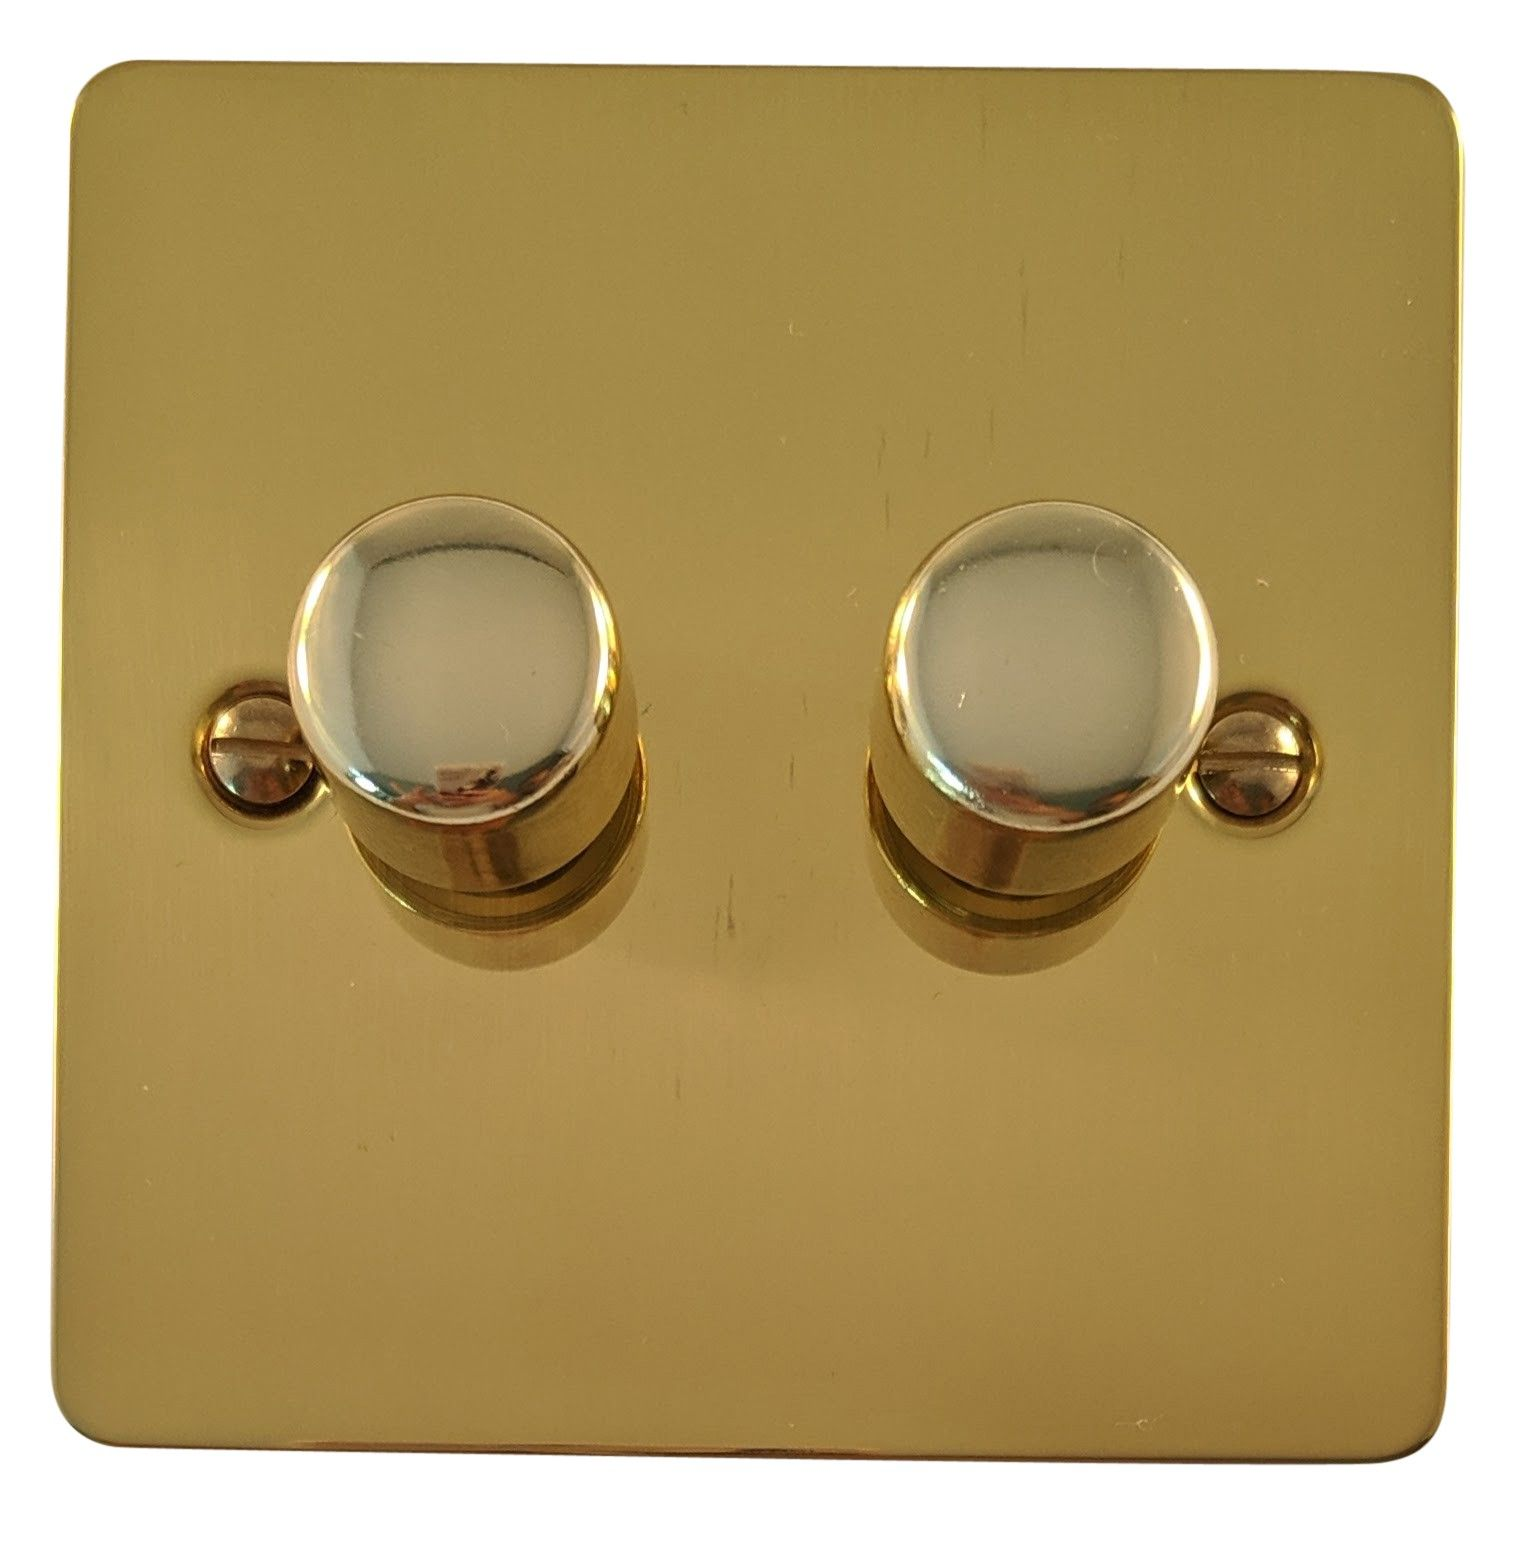 G&H FB12 Flat Plate Polished Brass 2 Gang 1 or 2 Way 40-400W Dimmer Switch